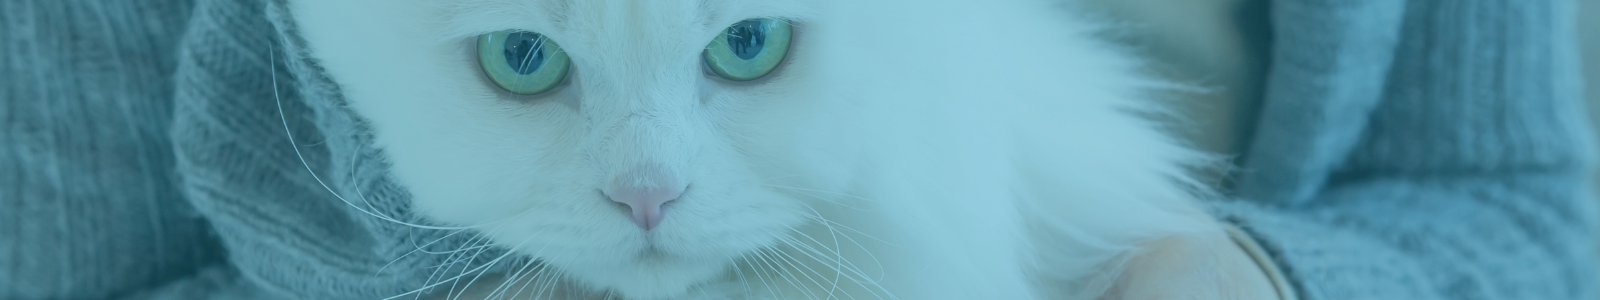 White cat's face with blue eyes up close